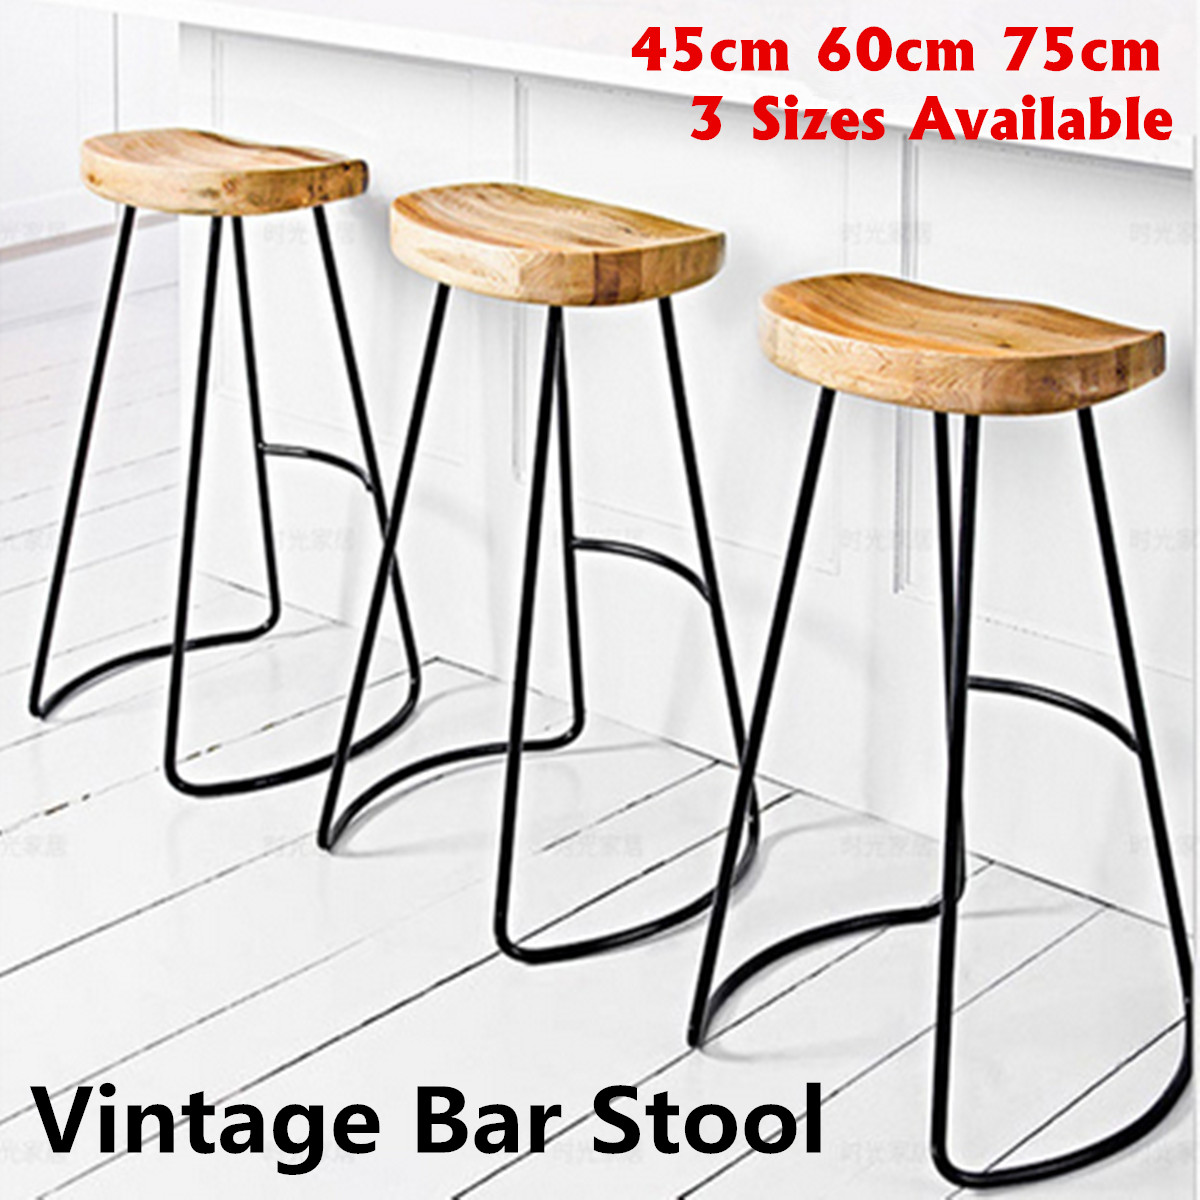 Constructive Industrial Vintage Bar Stool 45/60/75cm Retro Counter Seat Retro Pub Kitchen Metal Wood Chair Outdoor Bar Furniture Decoration Furniture